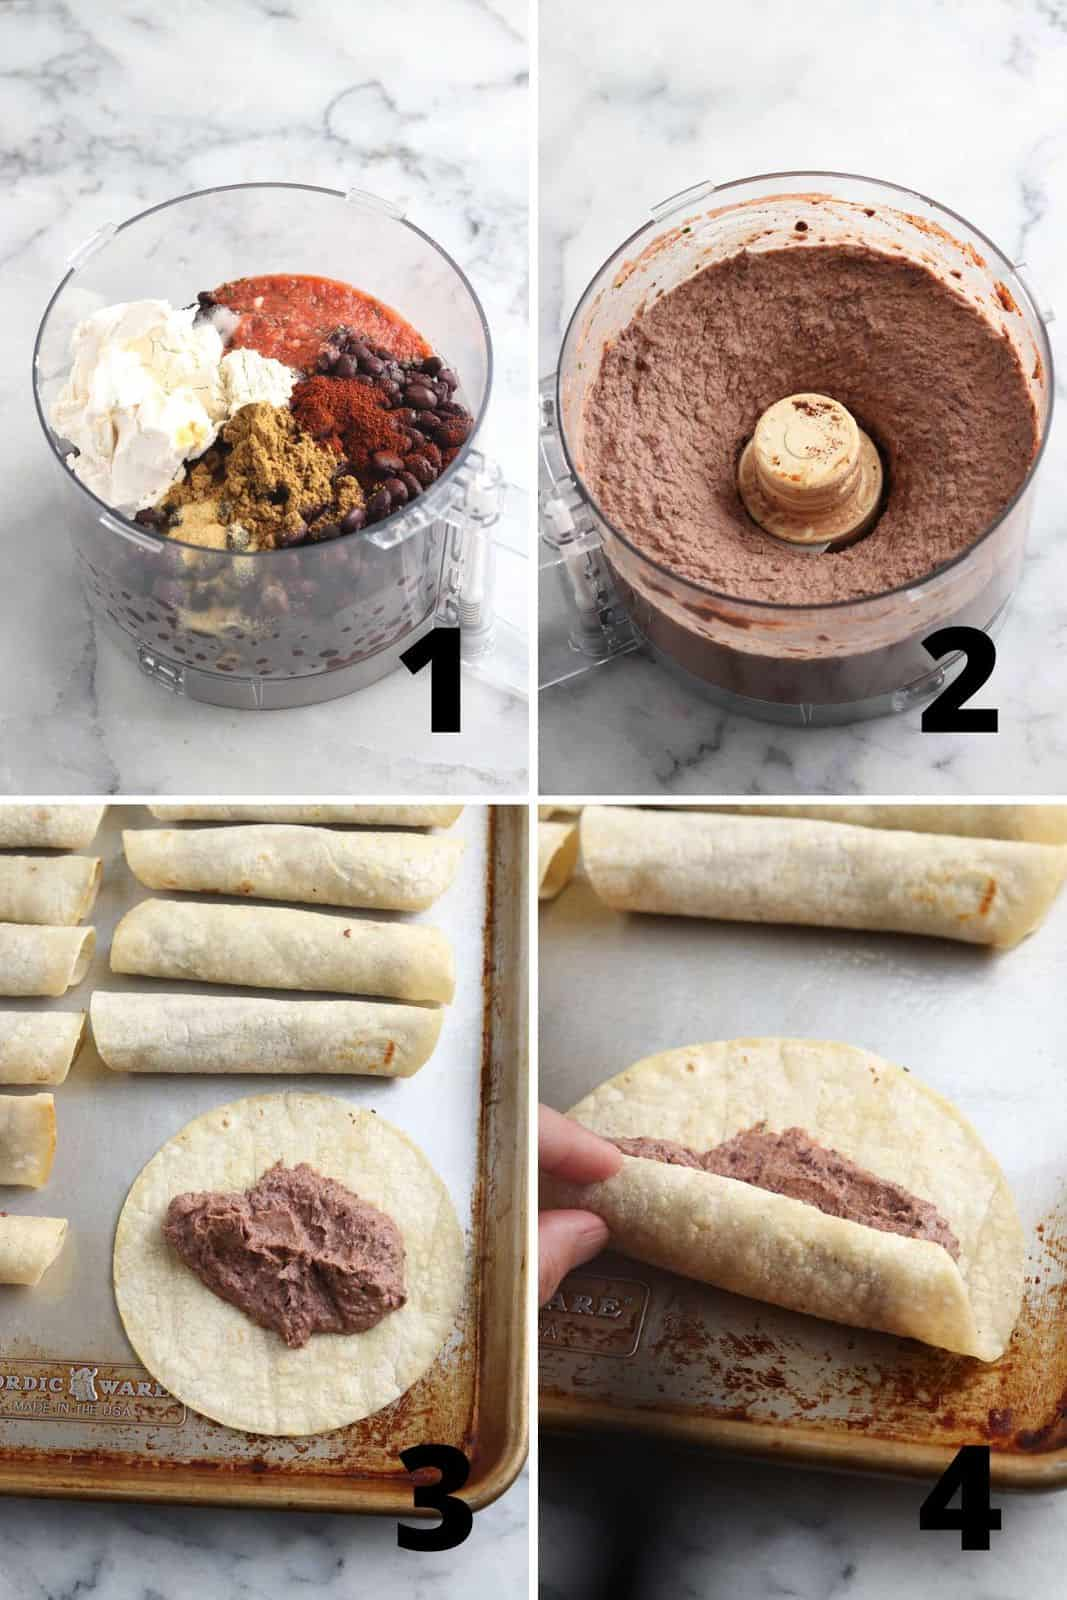 collage of four showing ingredients and steps for how to make black bean taquitos: process beans in a blender, stuff taquitos, and roll them up.